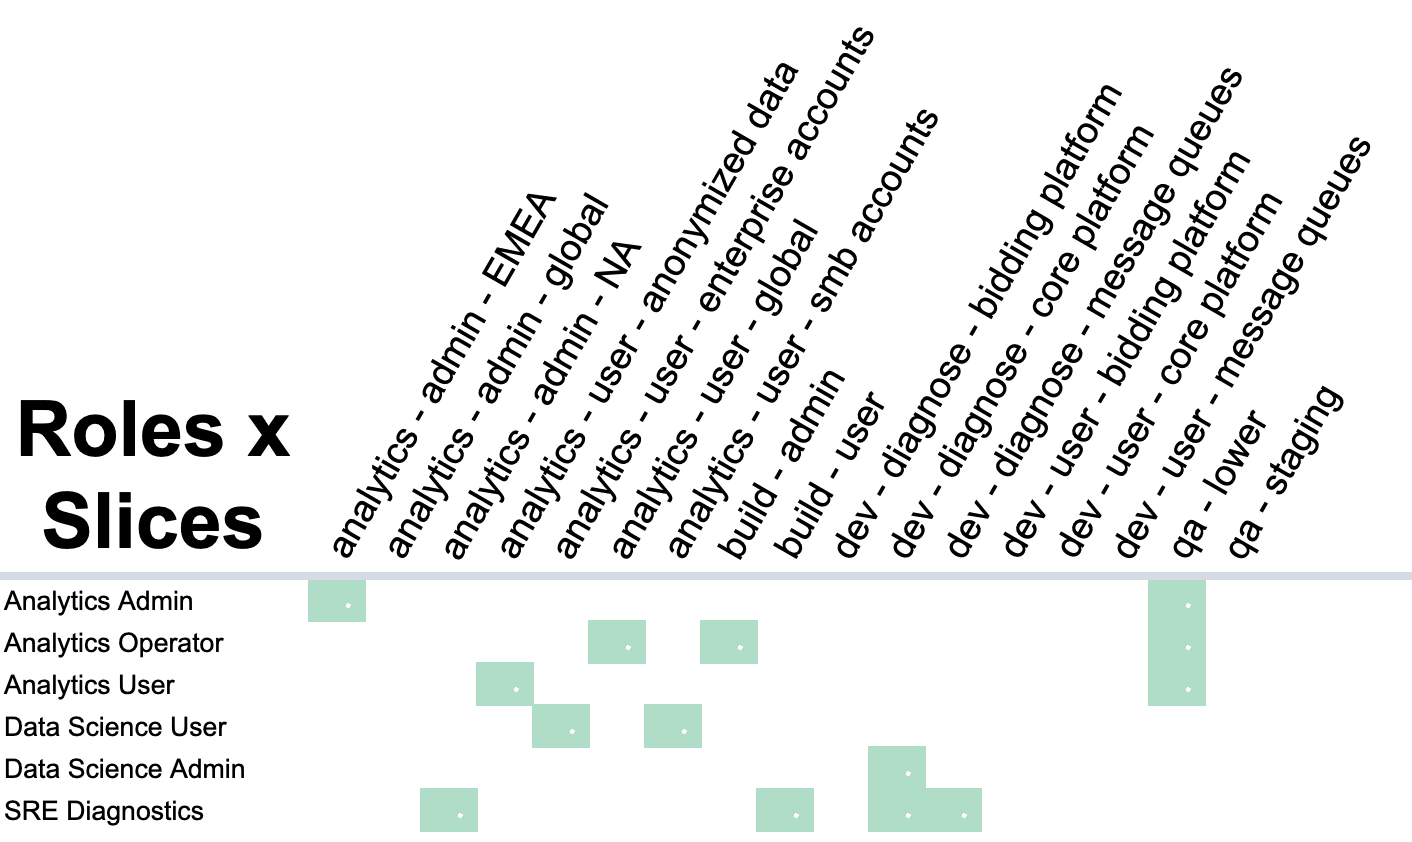 Roles Slices Image